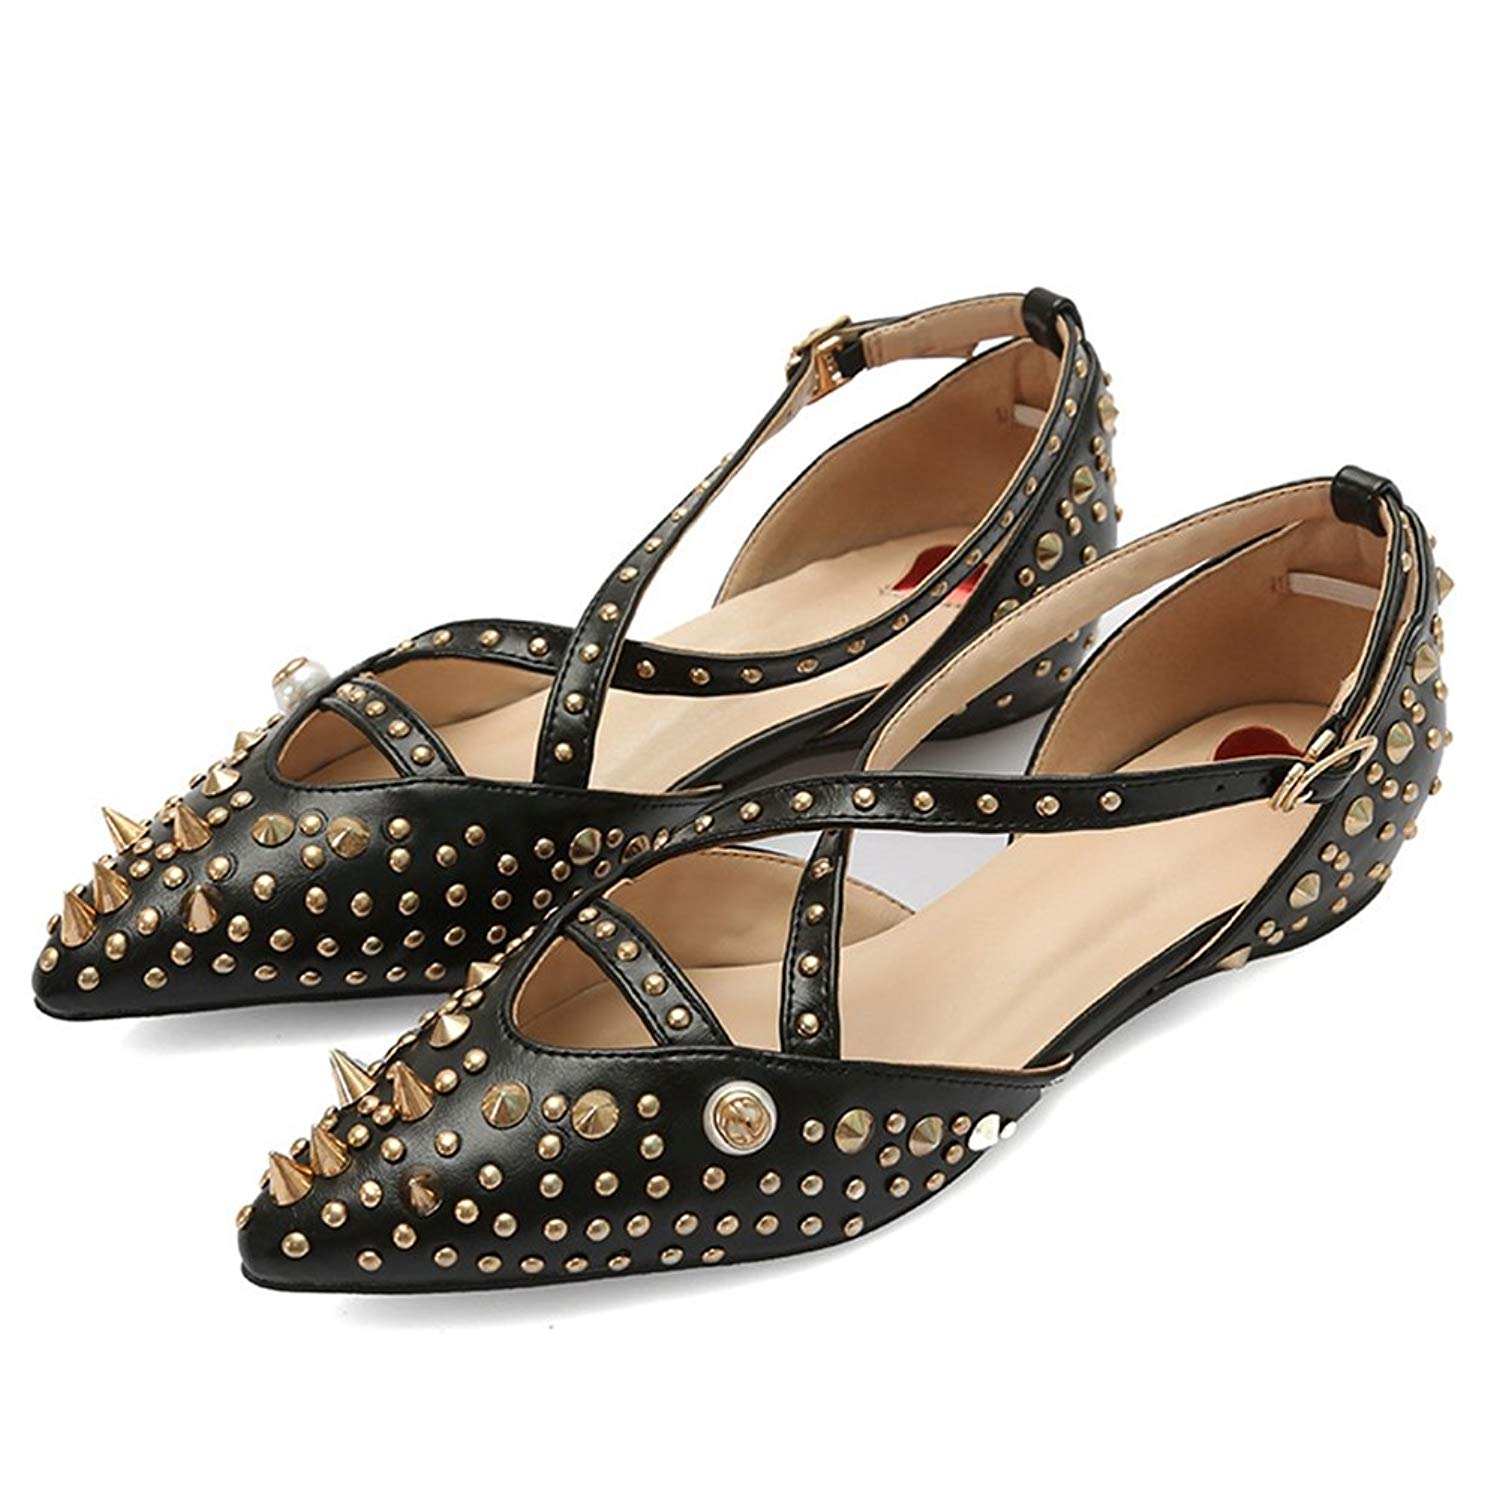 fa9cf5595cf0e1 Get Quotations · JINANLIPIN Women s Pointer Toe Cut Out Criss Cross Strap  Fashion Rivet Dress Flats Shoes